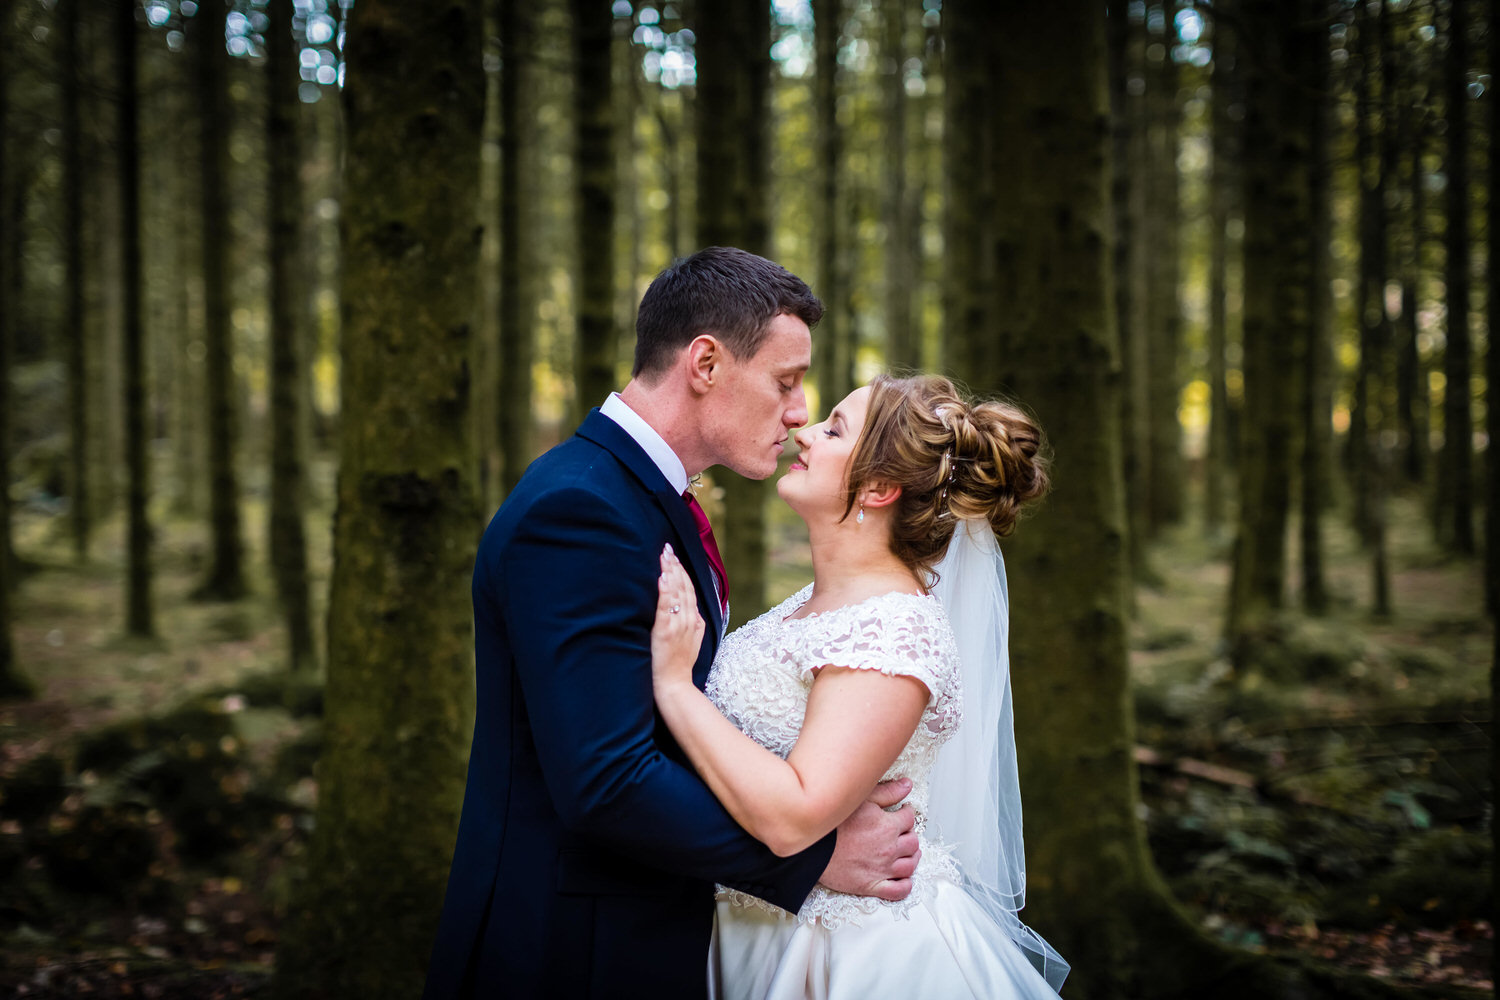 wedding photography in the forest near the brynffynon